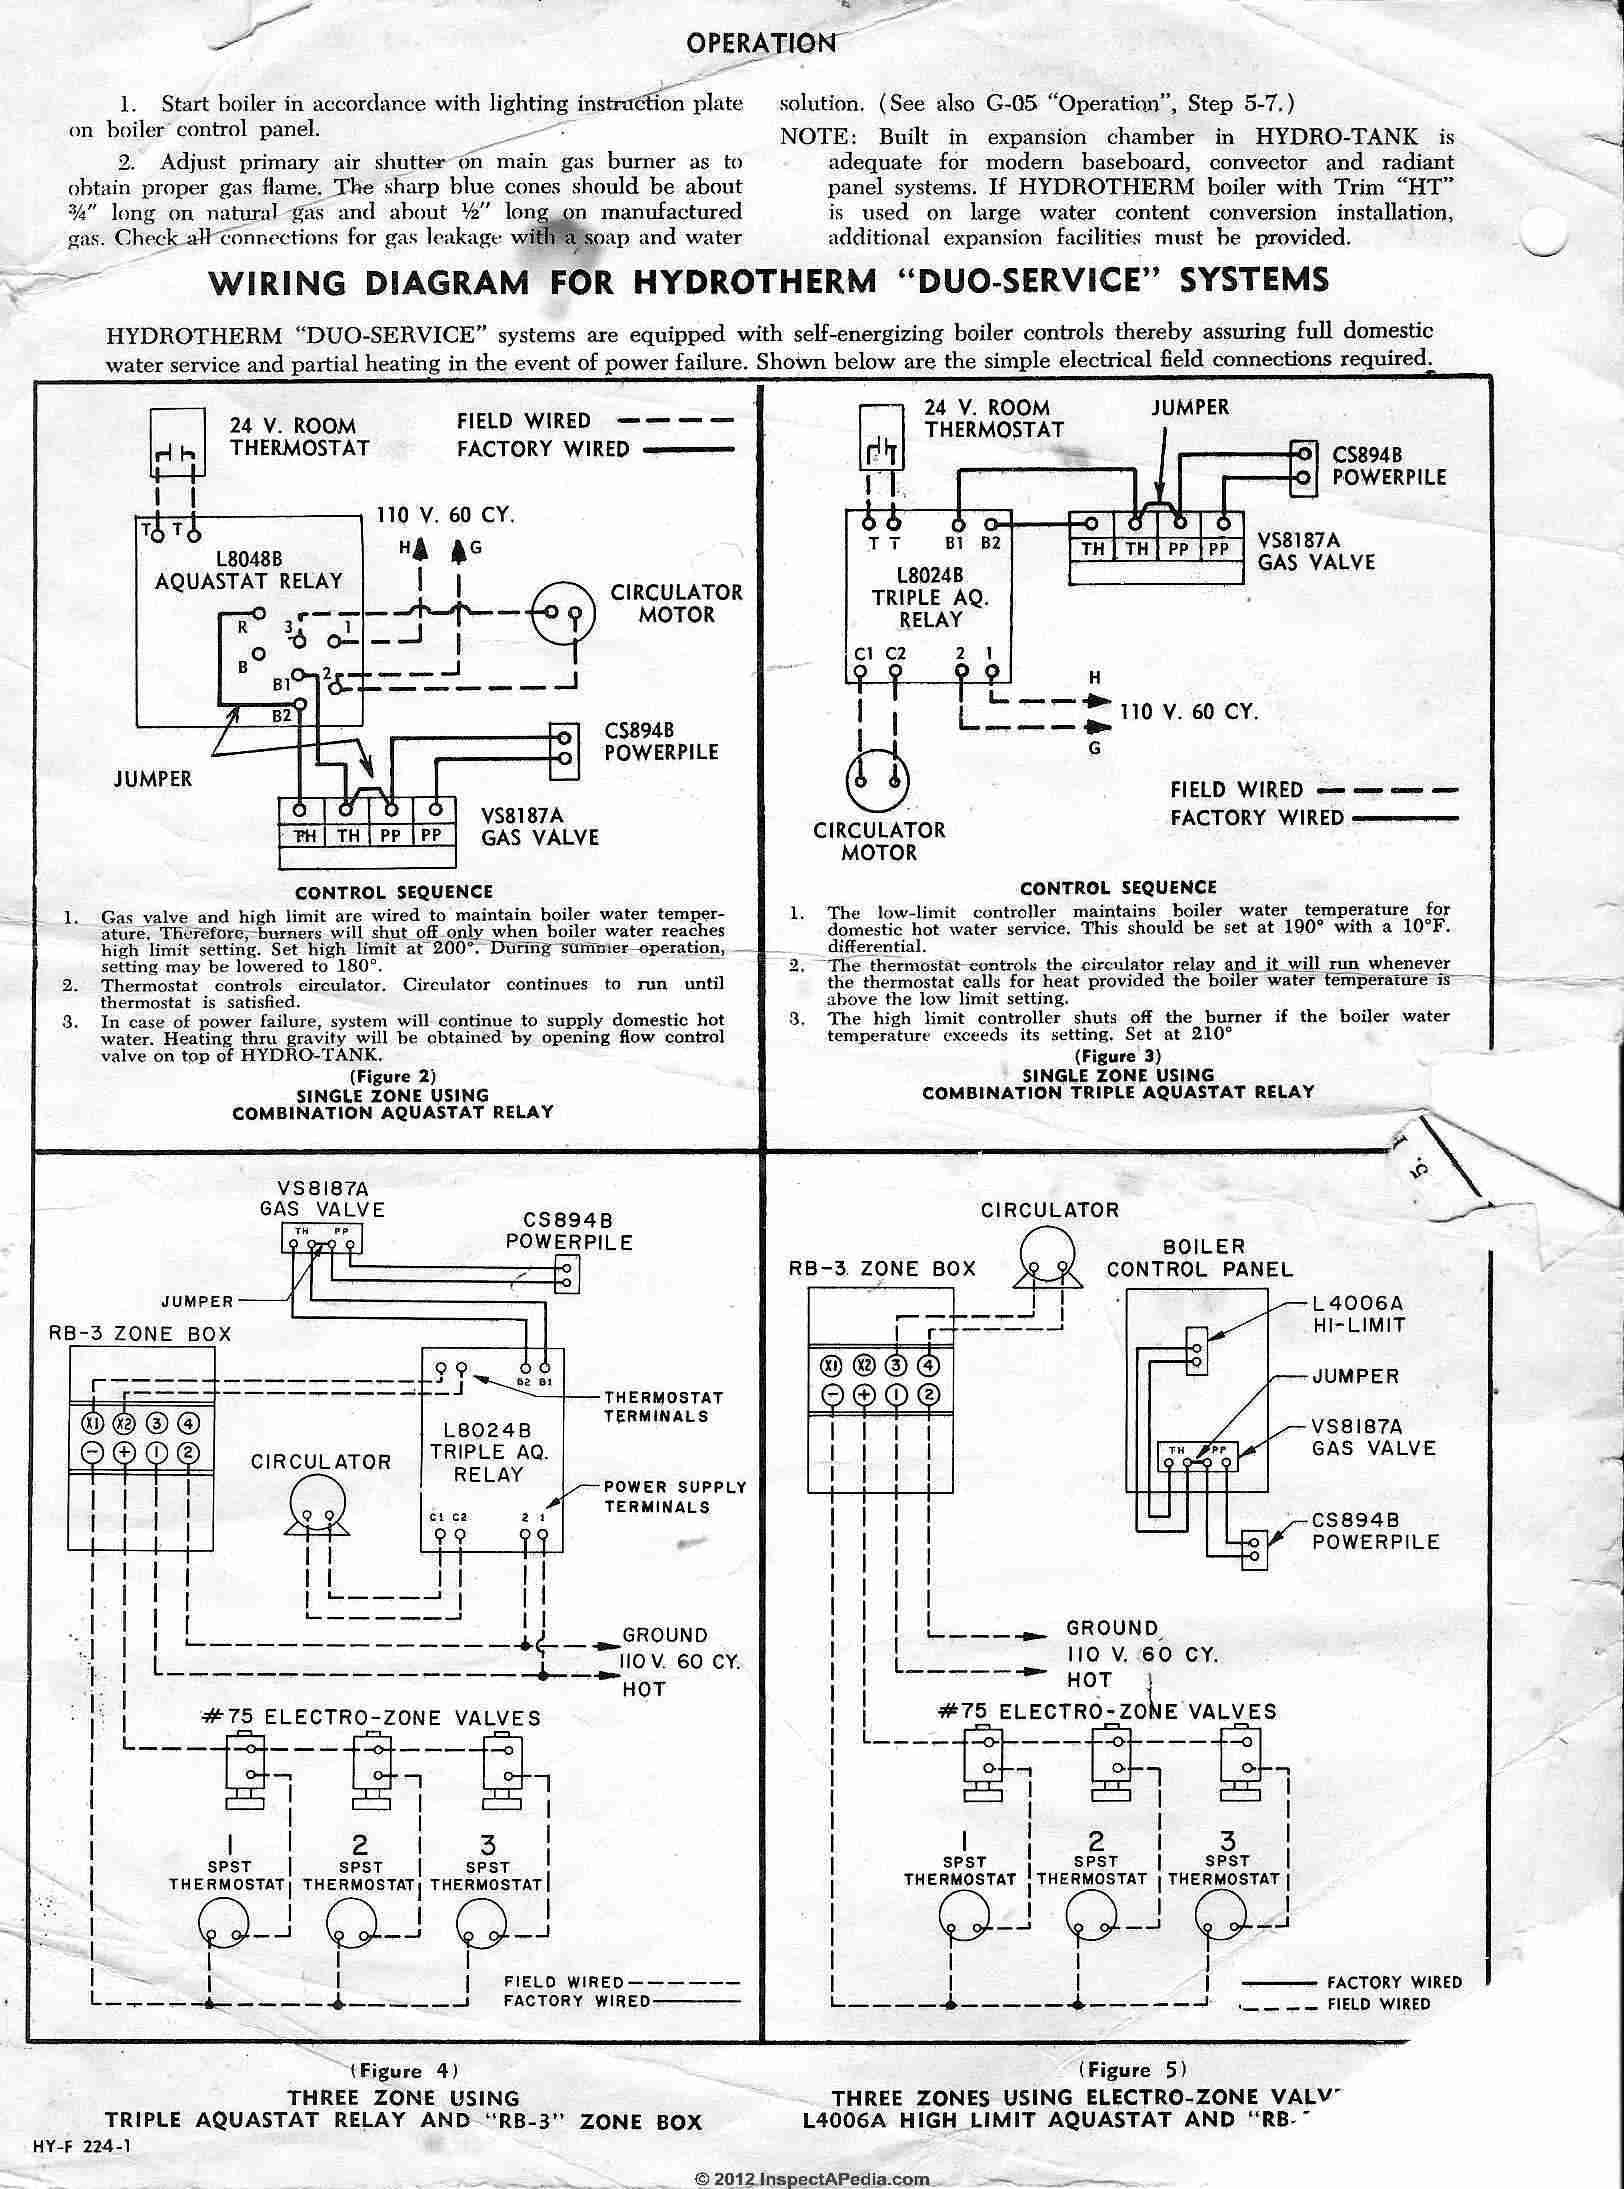 L8024B_Aquastat_0422_DJFcs honeywell l7224 wiring diagram honeywell l7224u aquastat wiring honeywell pressure switch wiring diagram at edmiracle.co